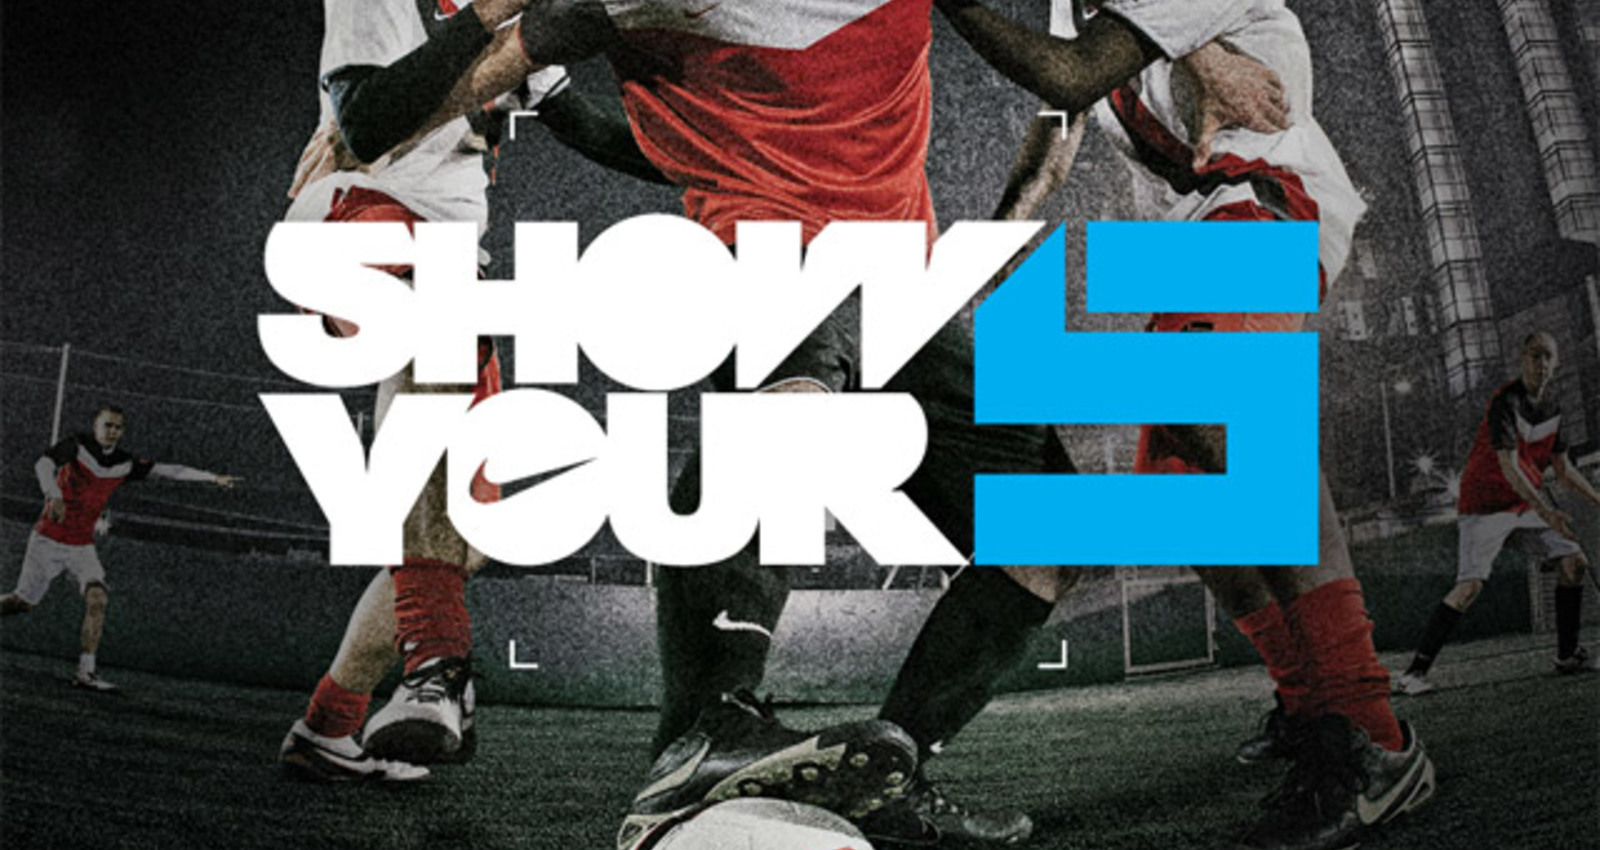 Nike: Show Your Five